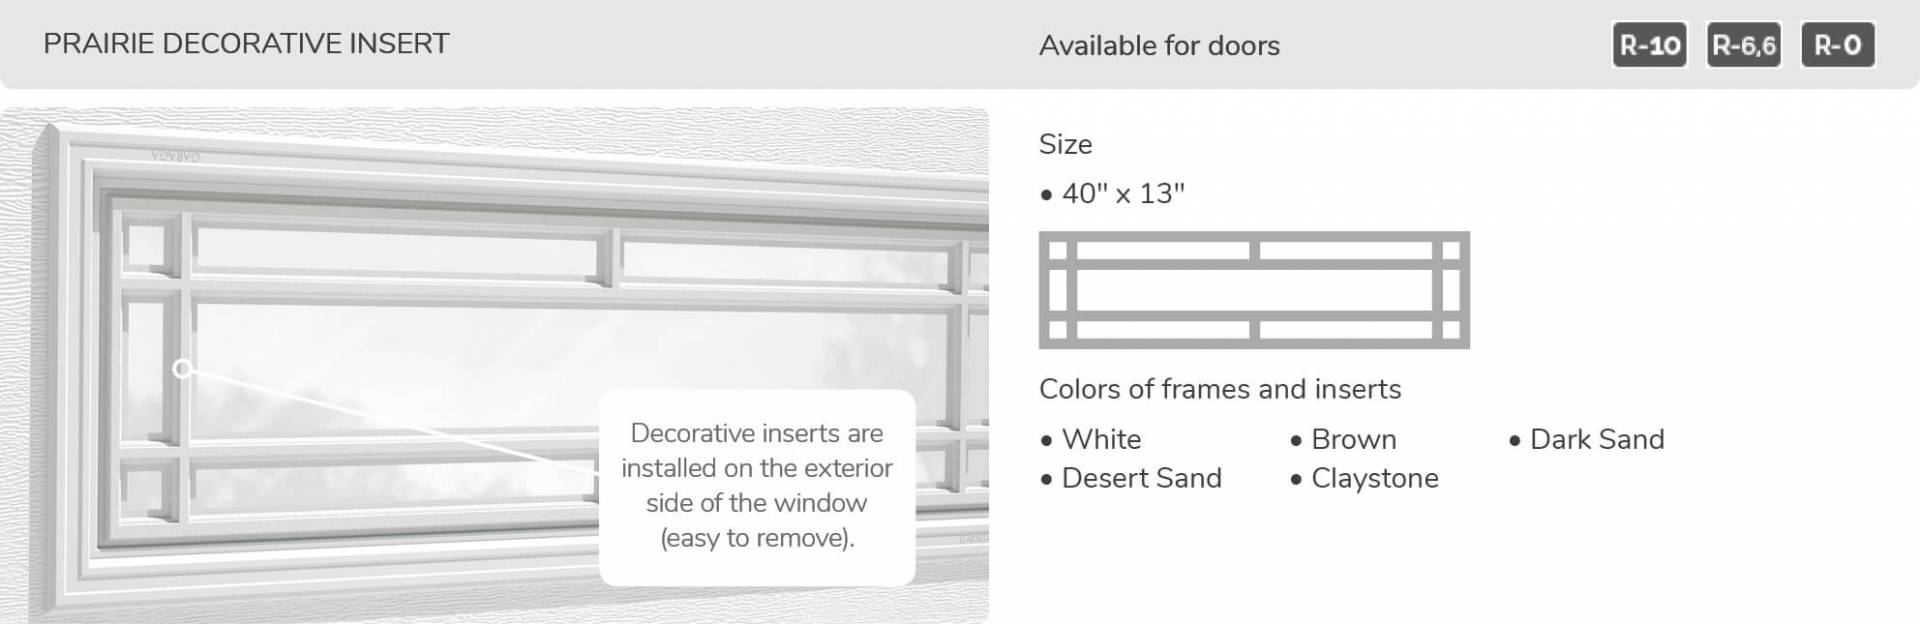 Prairie Decorative Insert, 40' x 13', available for doors R-10, R-6.6, R-0